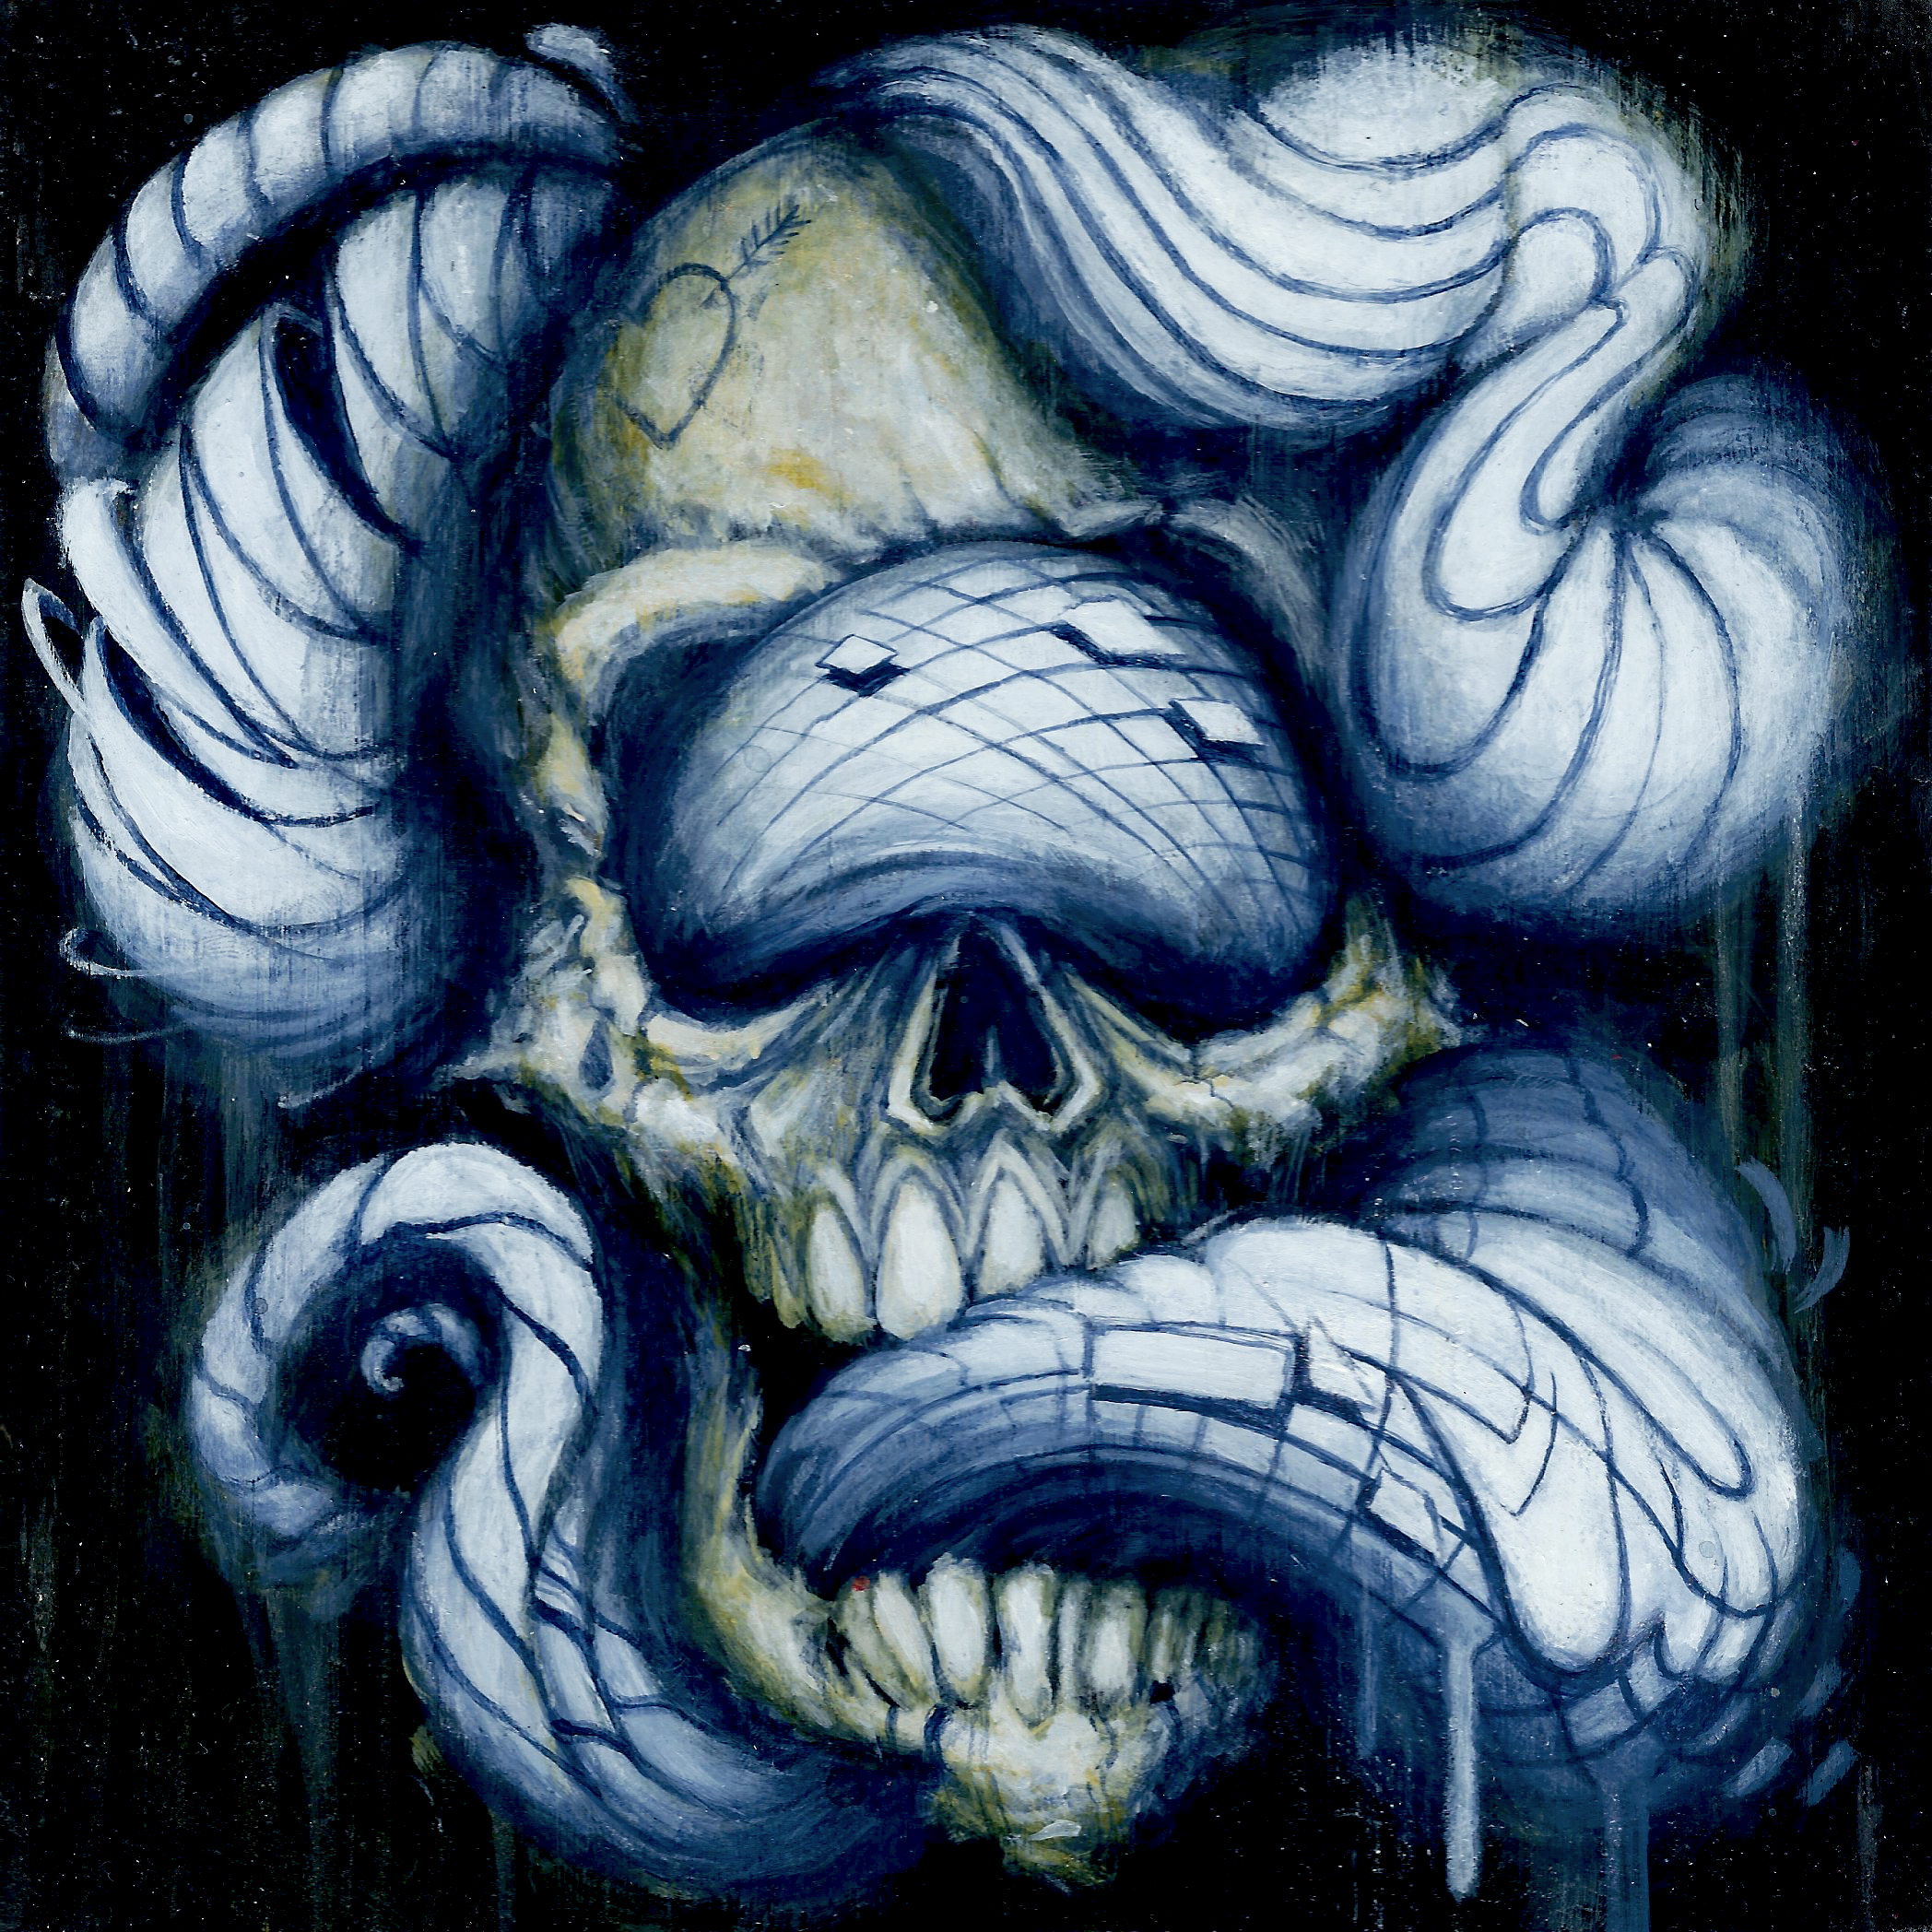 Ian C. Hess Skull and Tones Acrylic on Wood 7in. x 7in. SOLD 2016.jpg